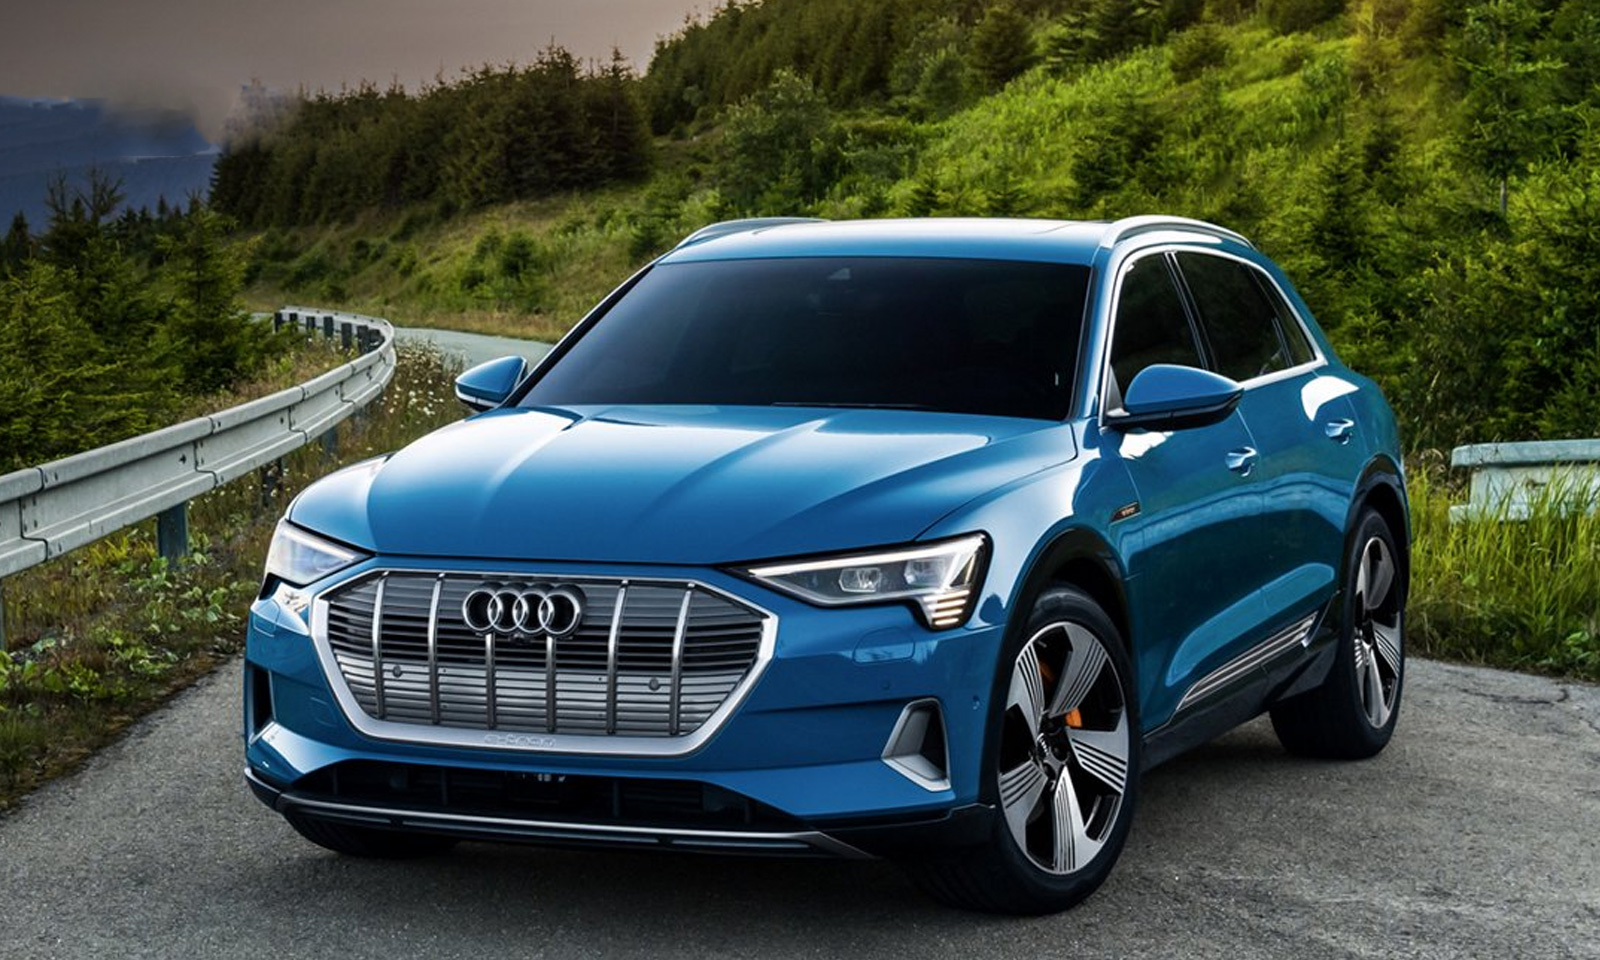 Audi San Francisco >> The Audi e-tron Electric SUV | 19TH HOLE MAGAZINE